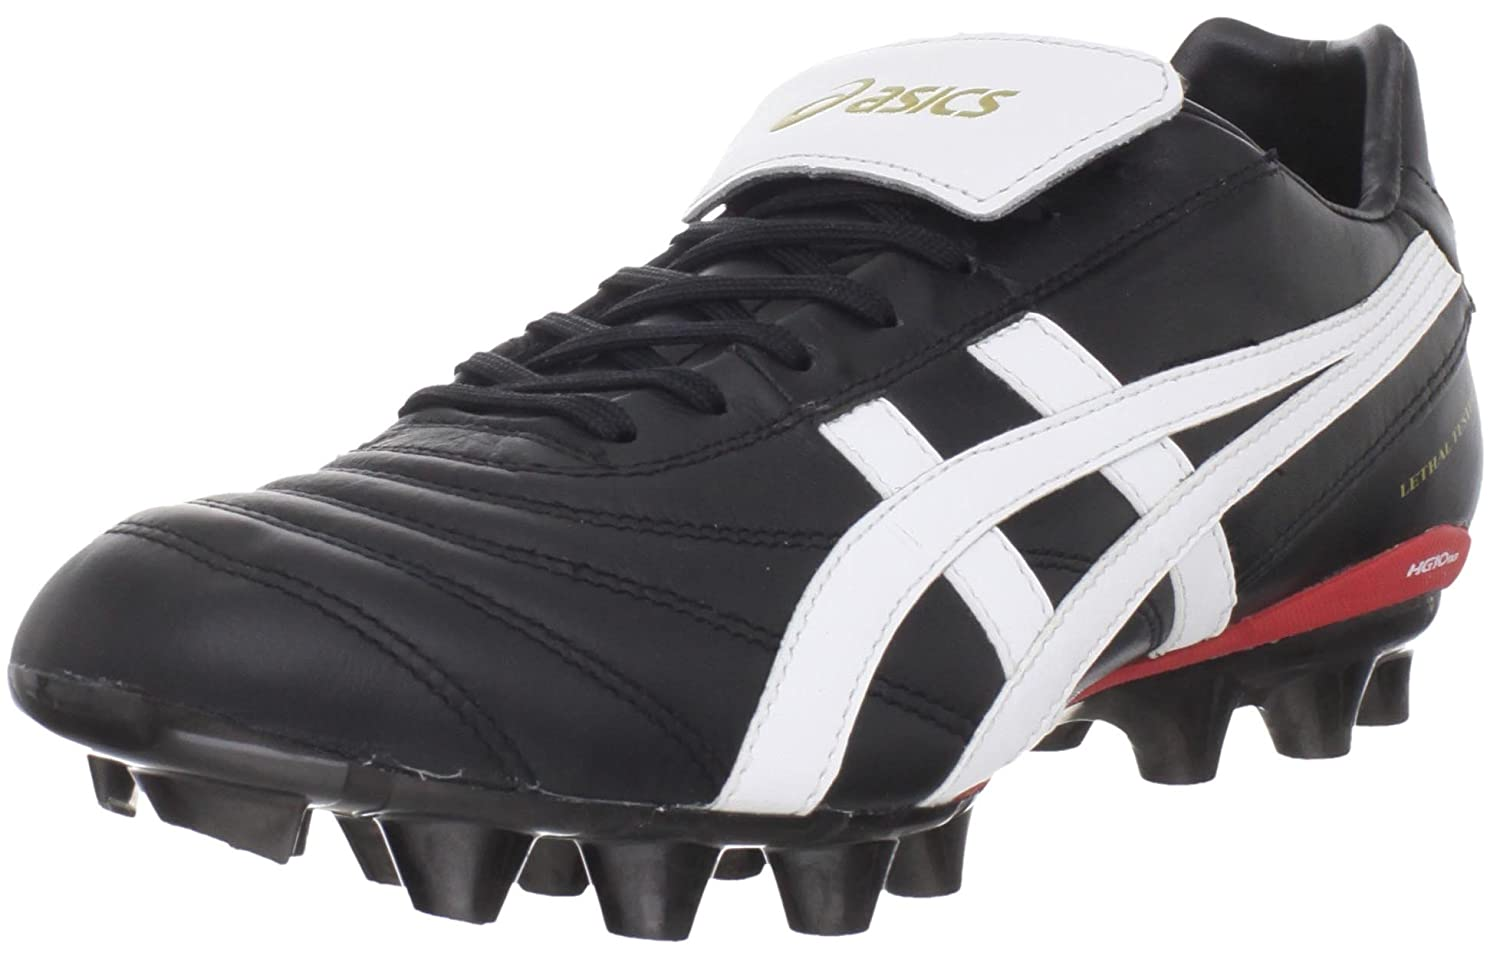 ASICS Men's Lethal Testimonial It Soccer Shoe B0053YOTD2 7 D(M) US|Black/White